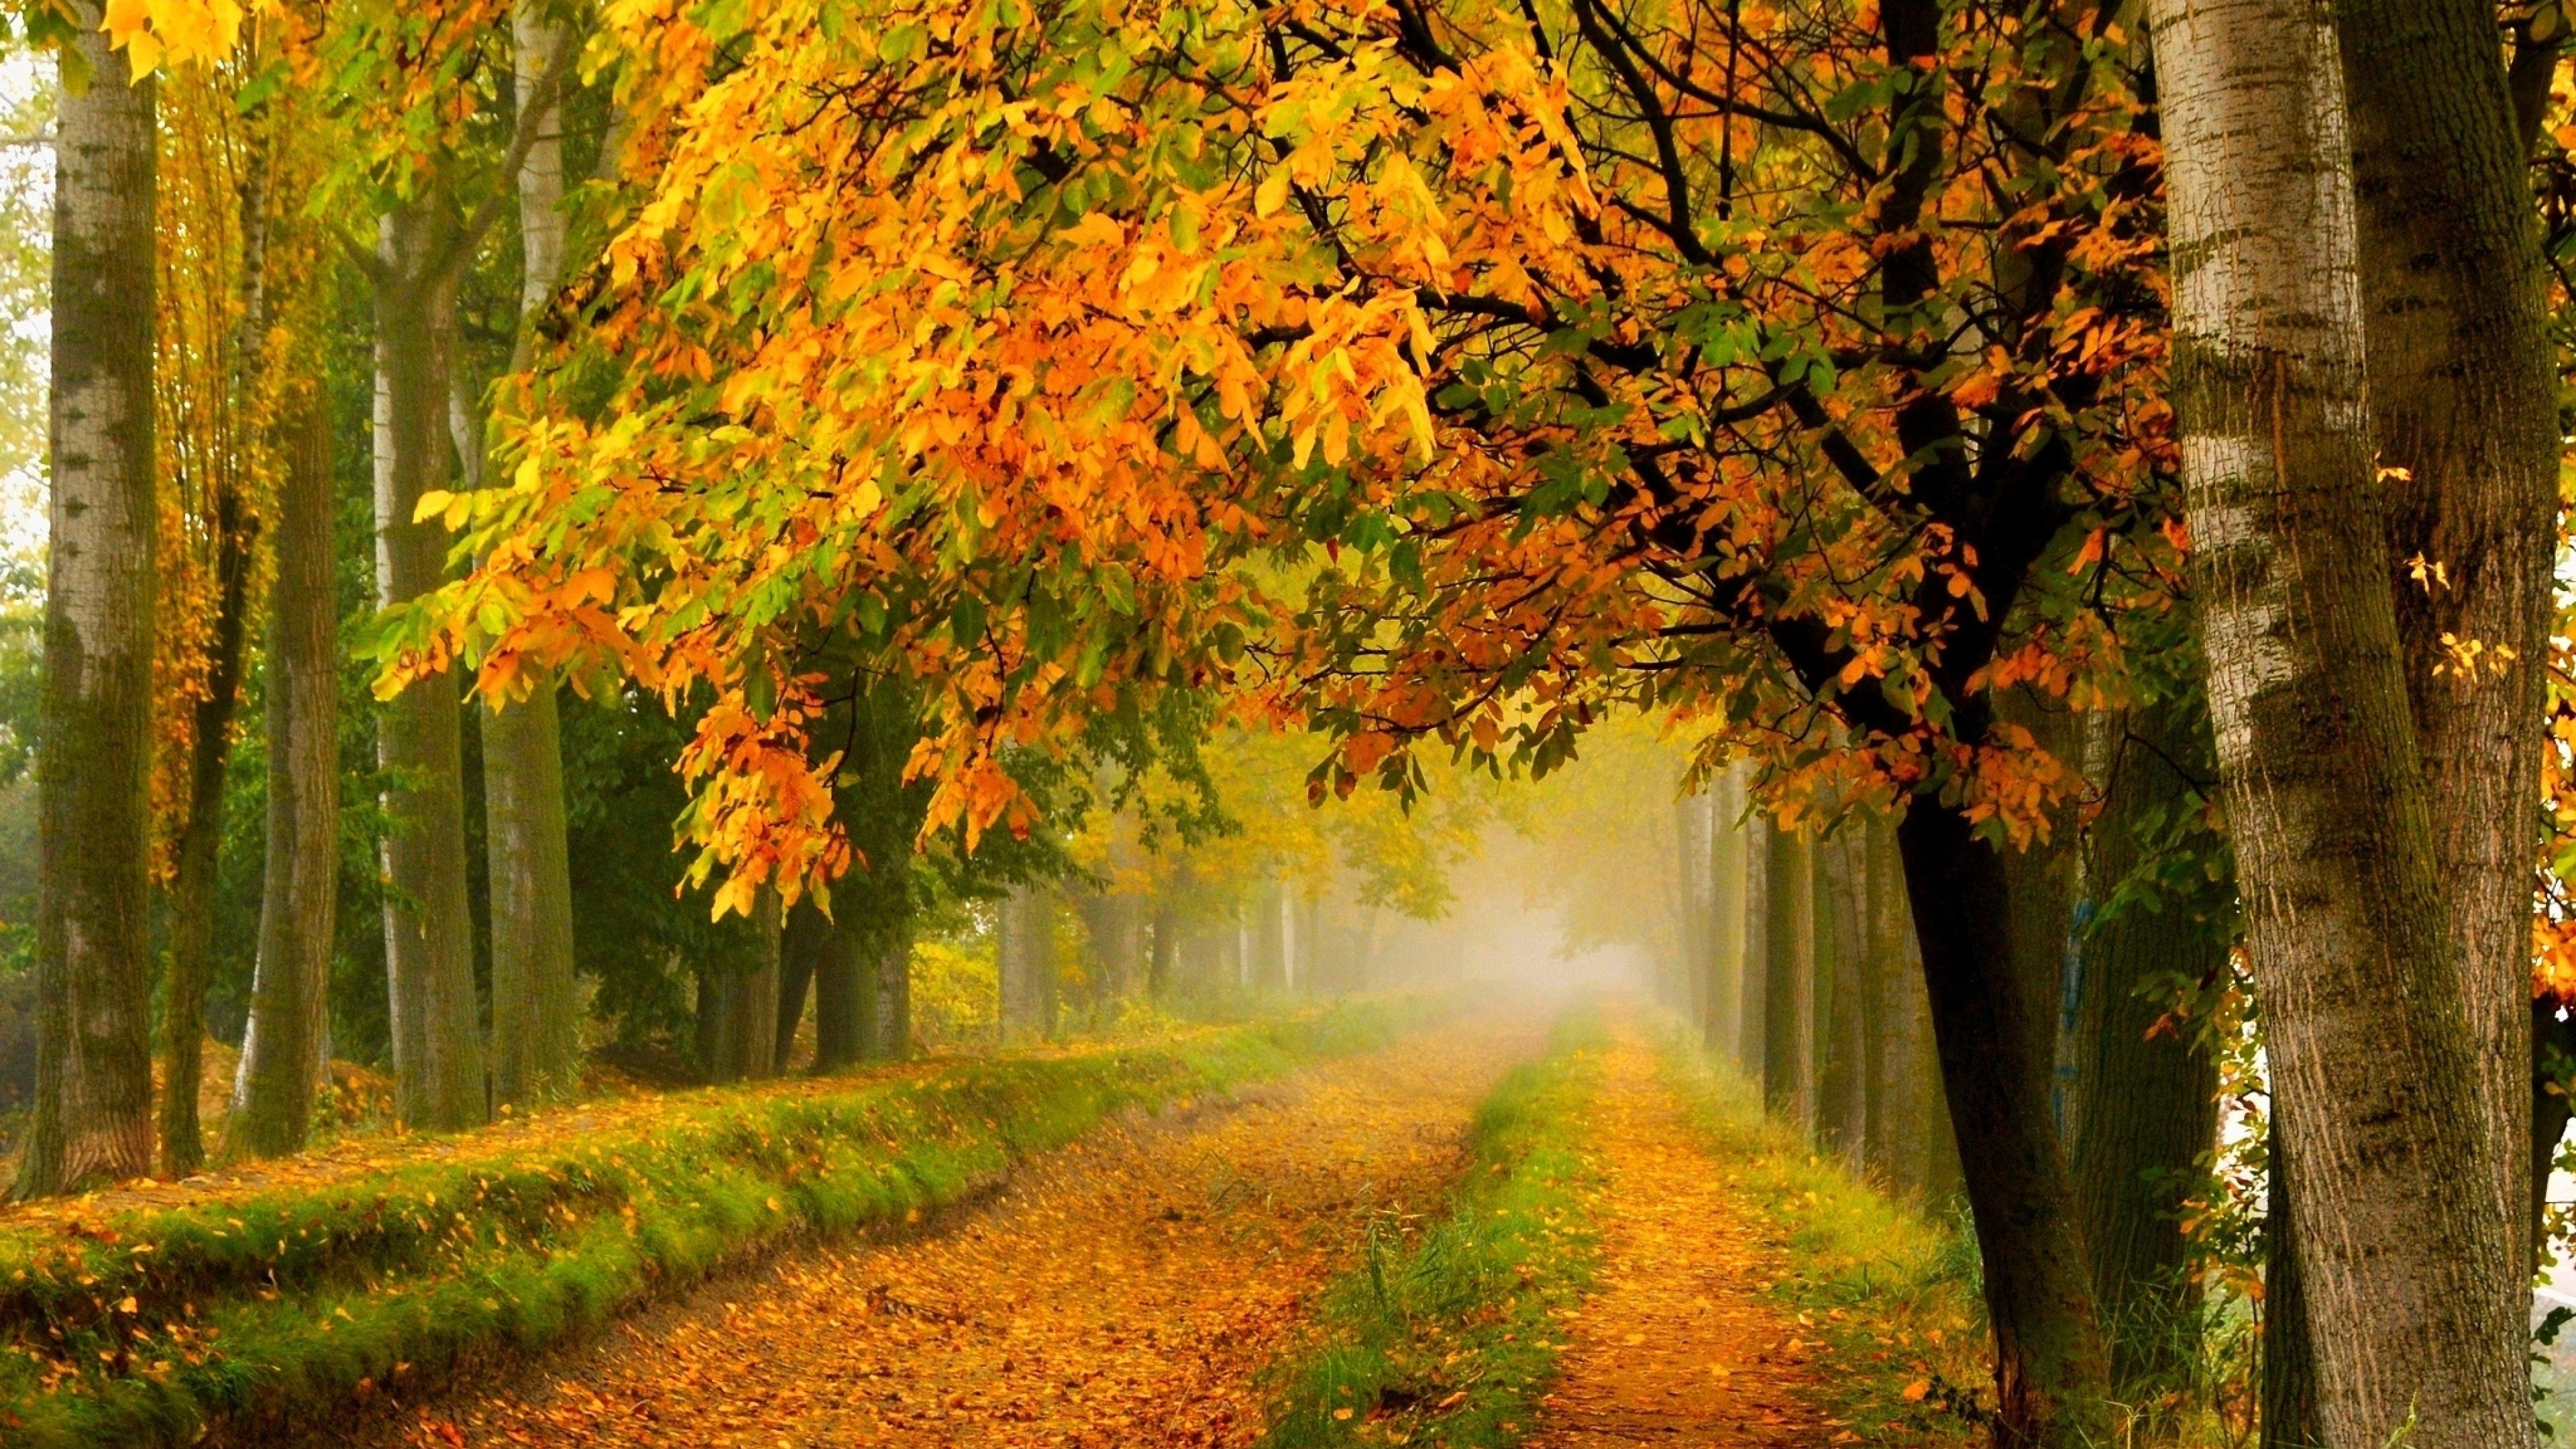 Iphone 5 Fall Wallpaper Background Autumn Trees With Yellow Leaves Country Road